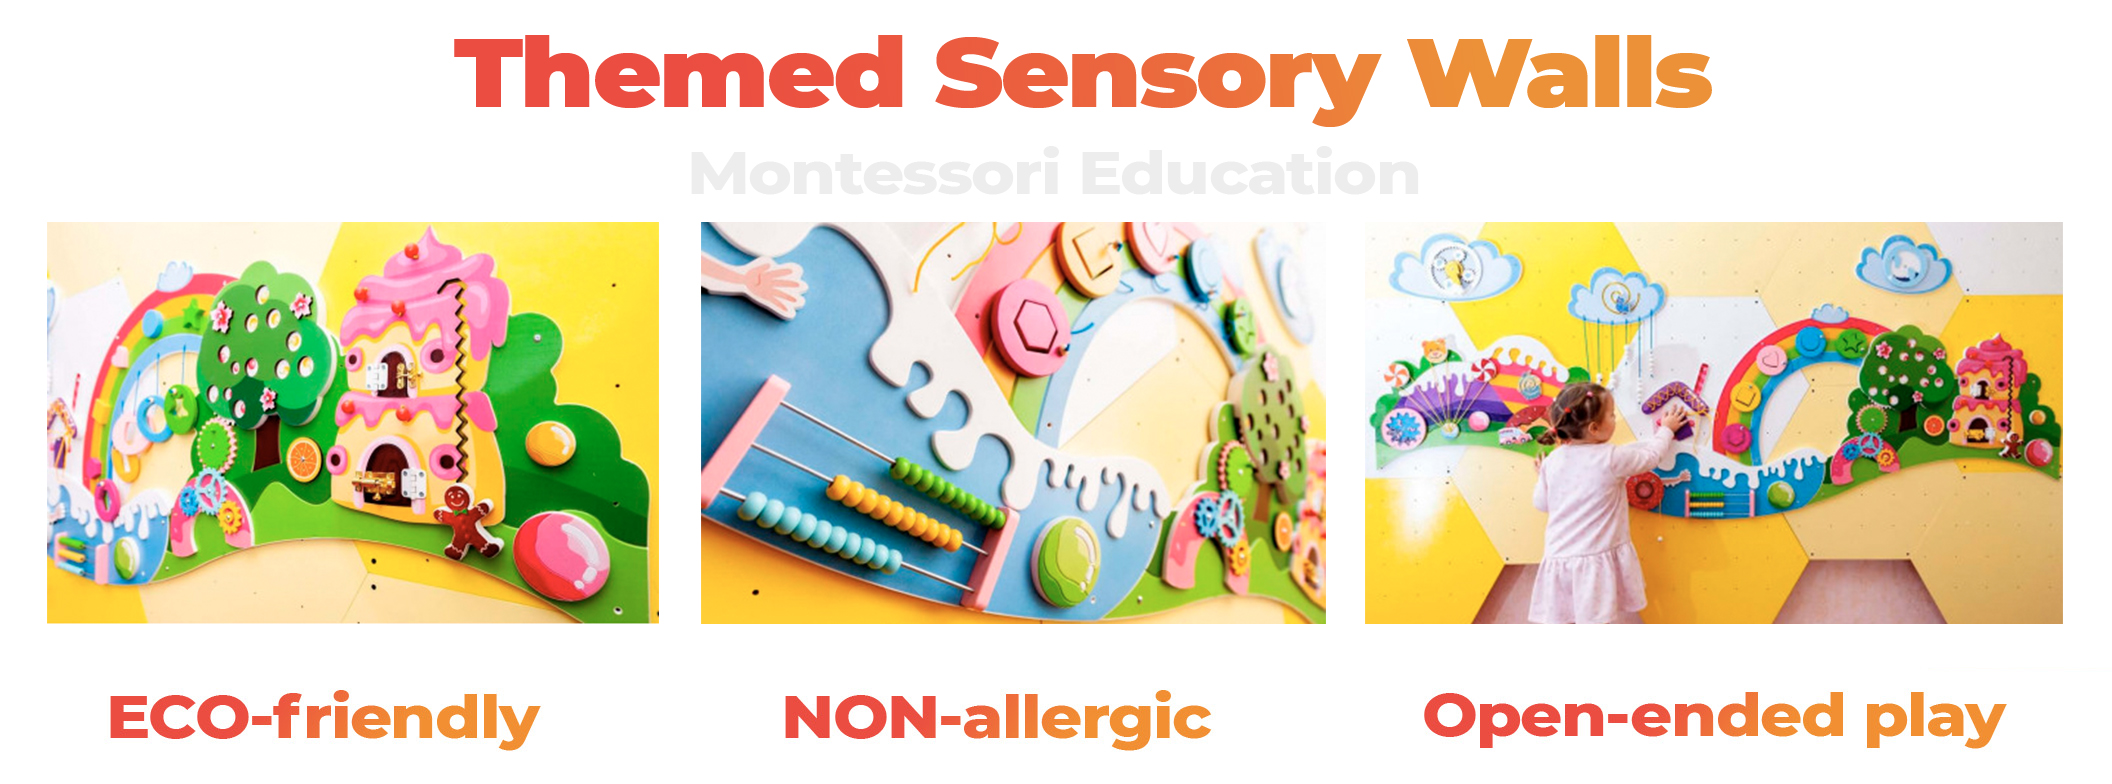 Themed Sensory walls